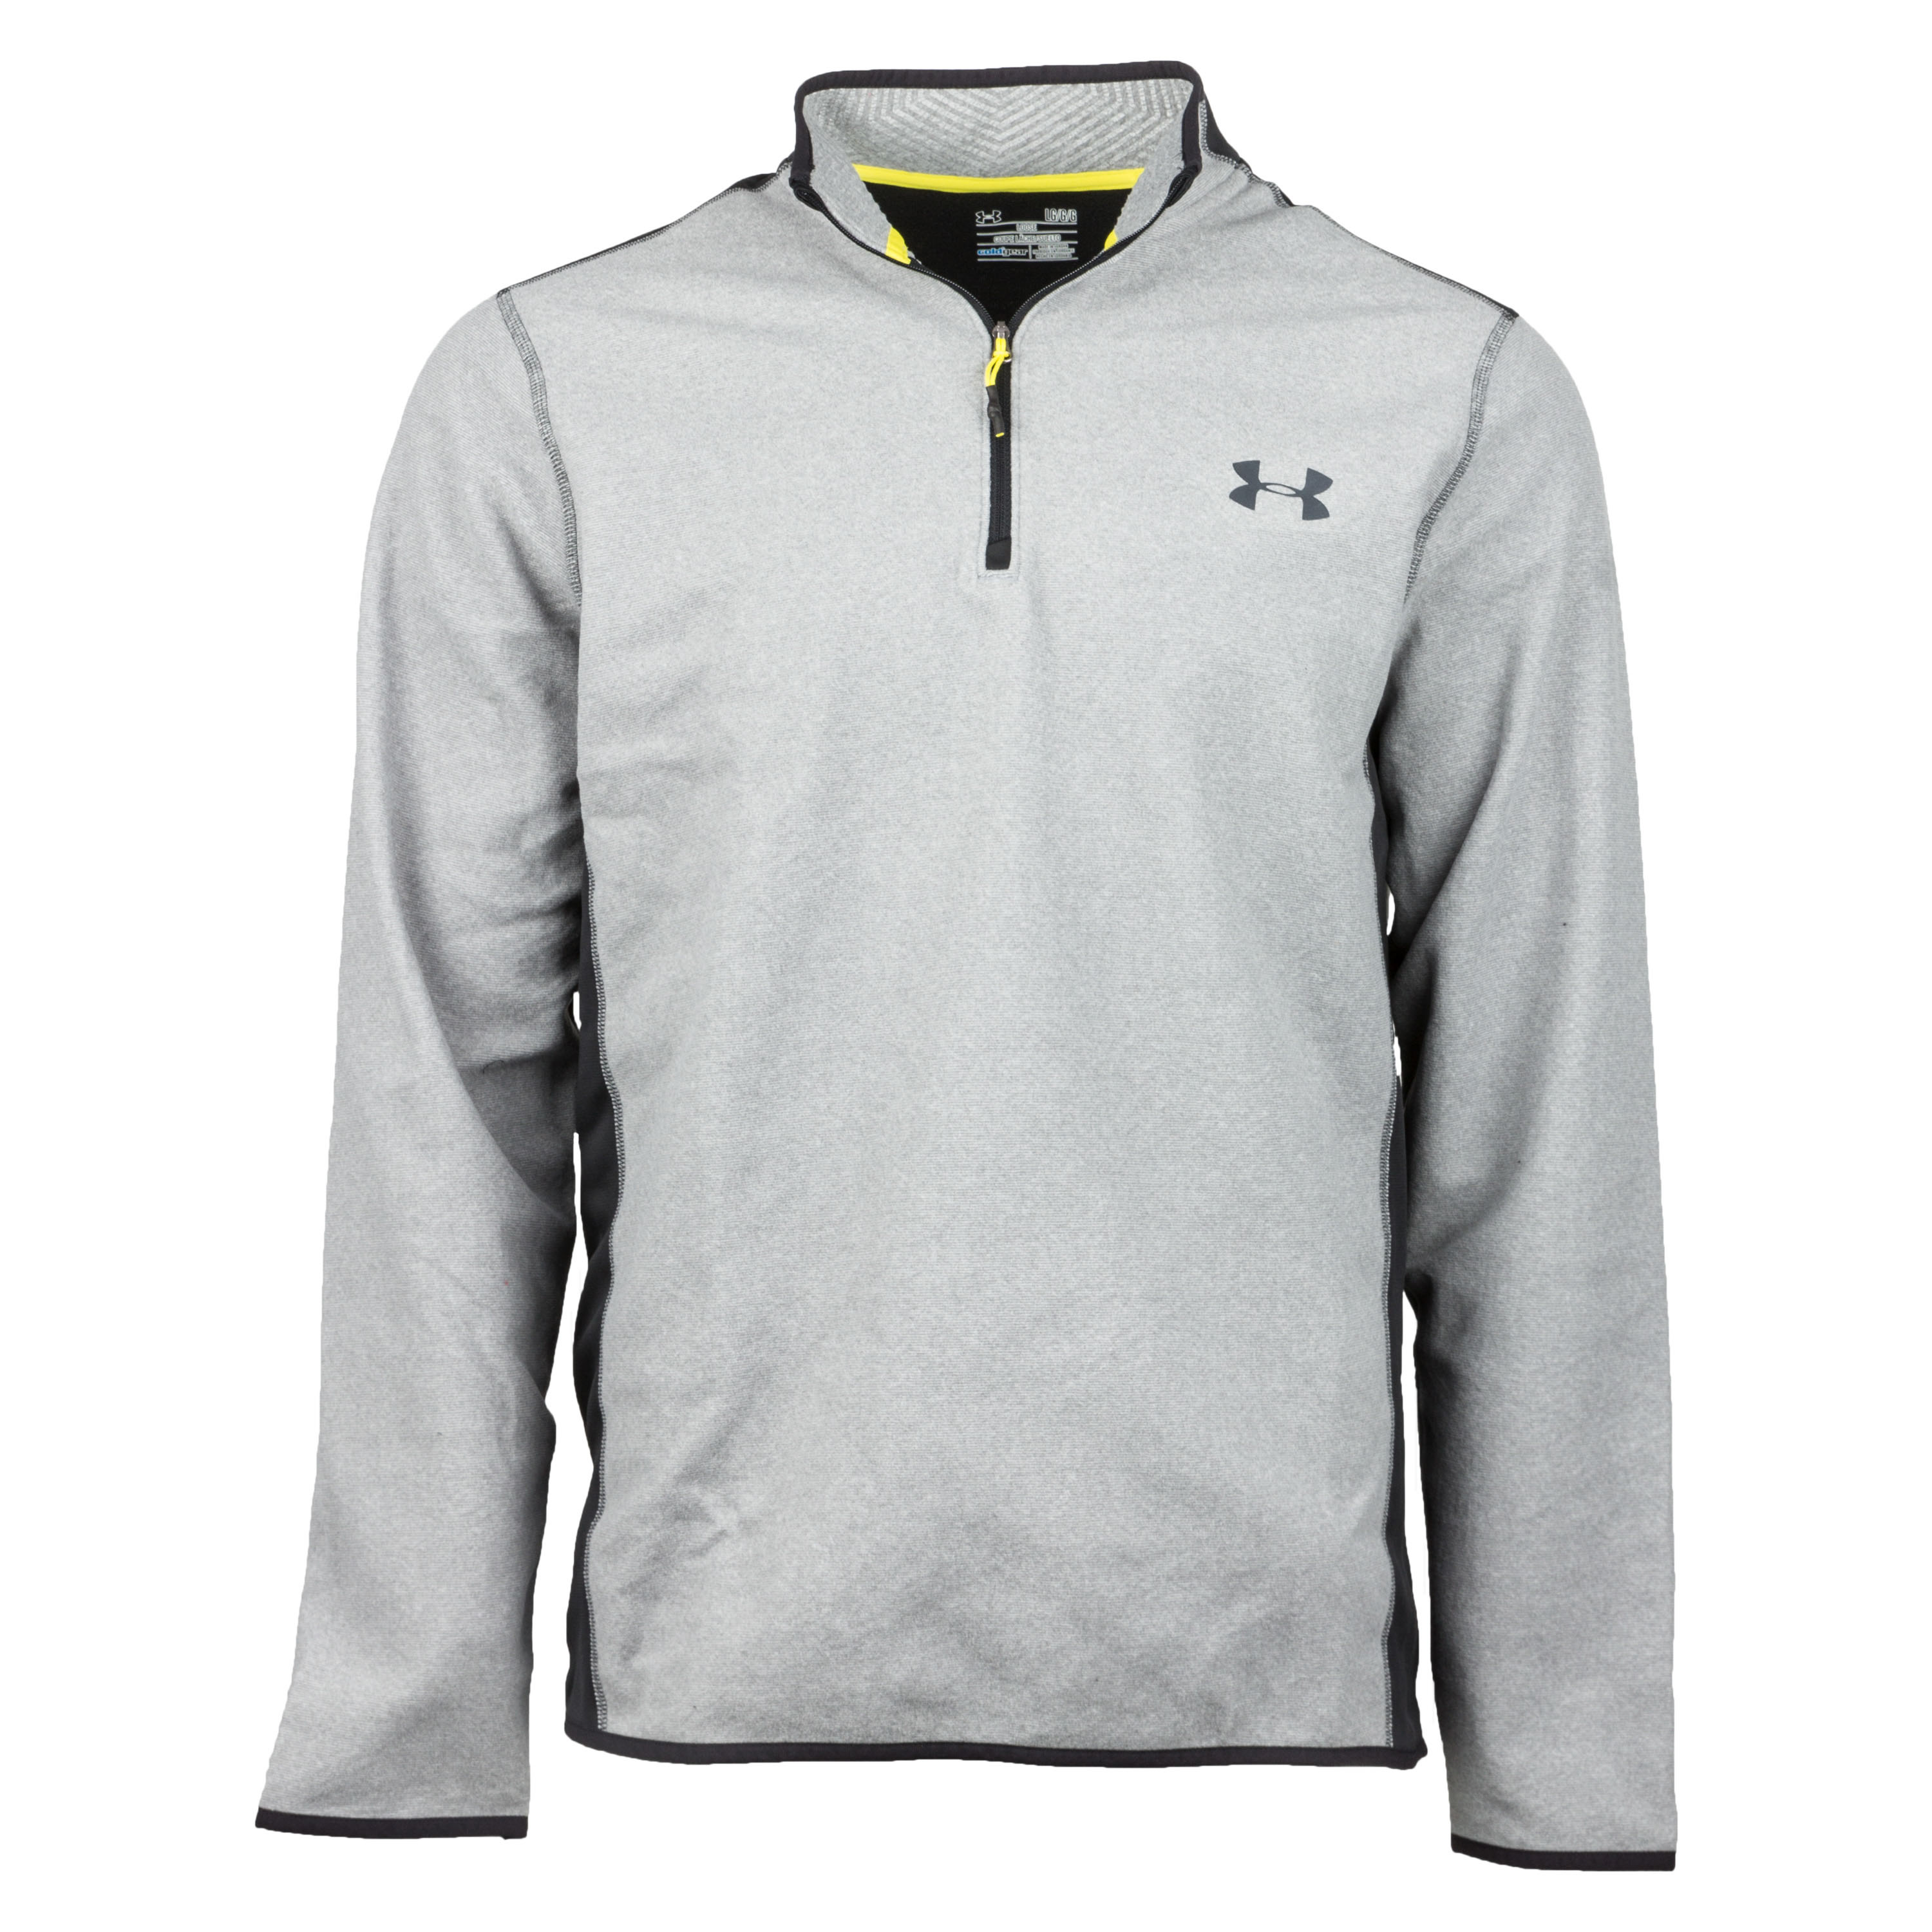 Under Armour Langarmshirt CGI Performance 1/4 Zip grau